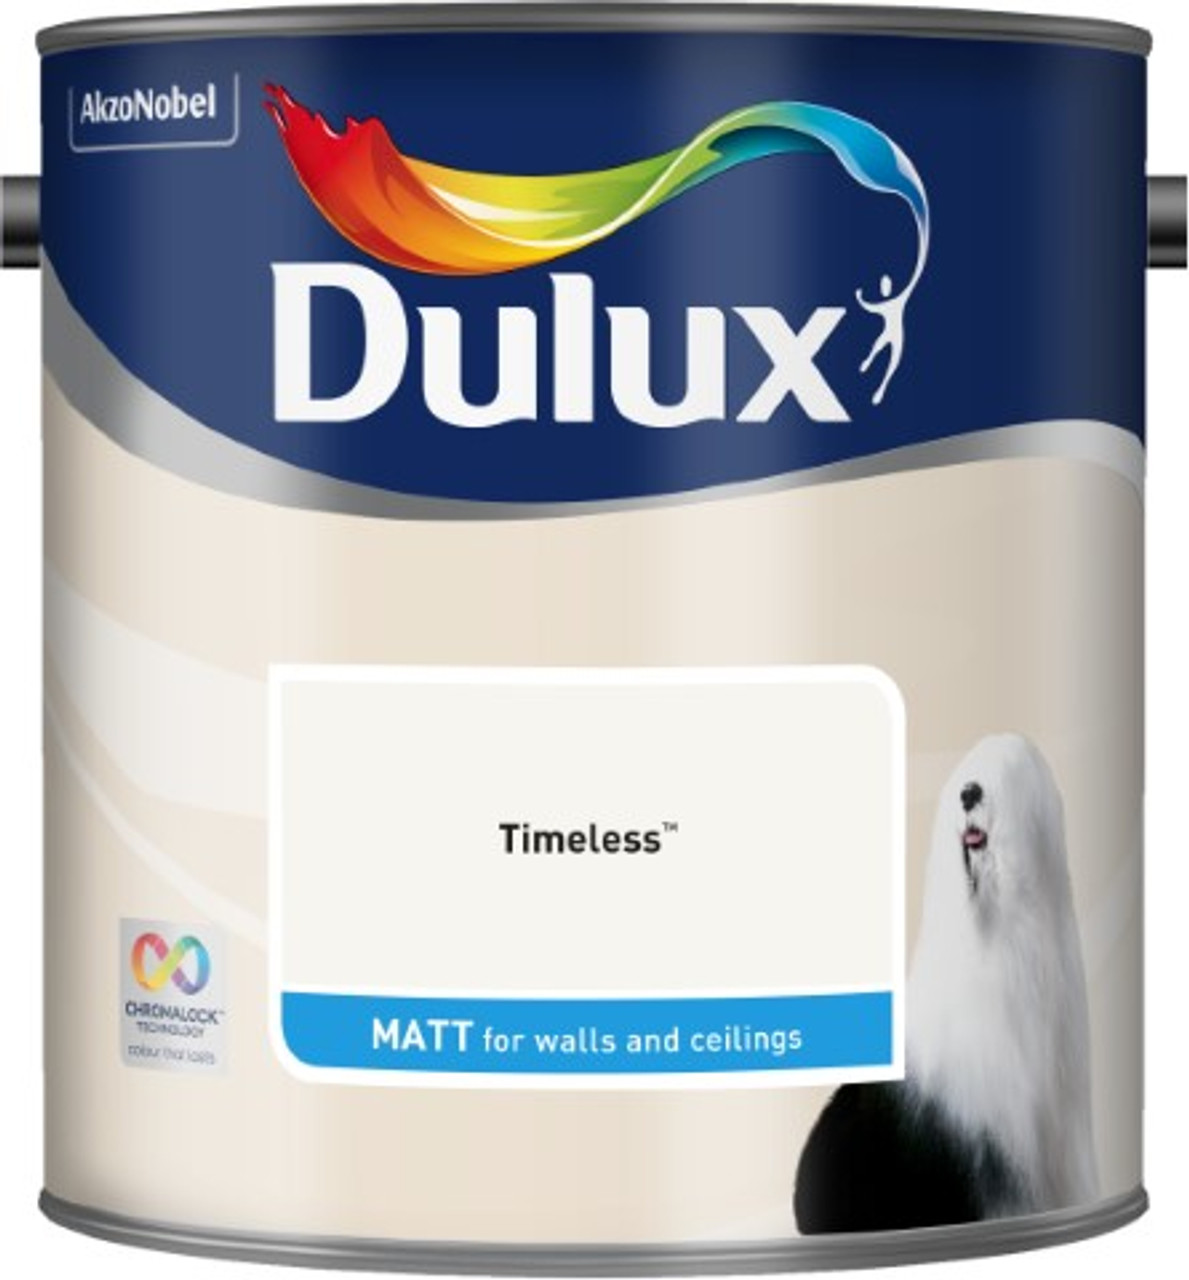 2.5L Dulux Matt Emulsion Timeless